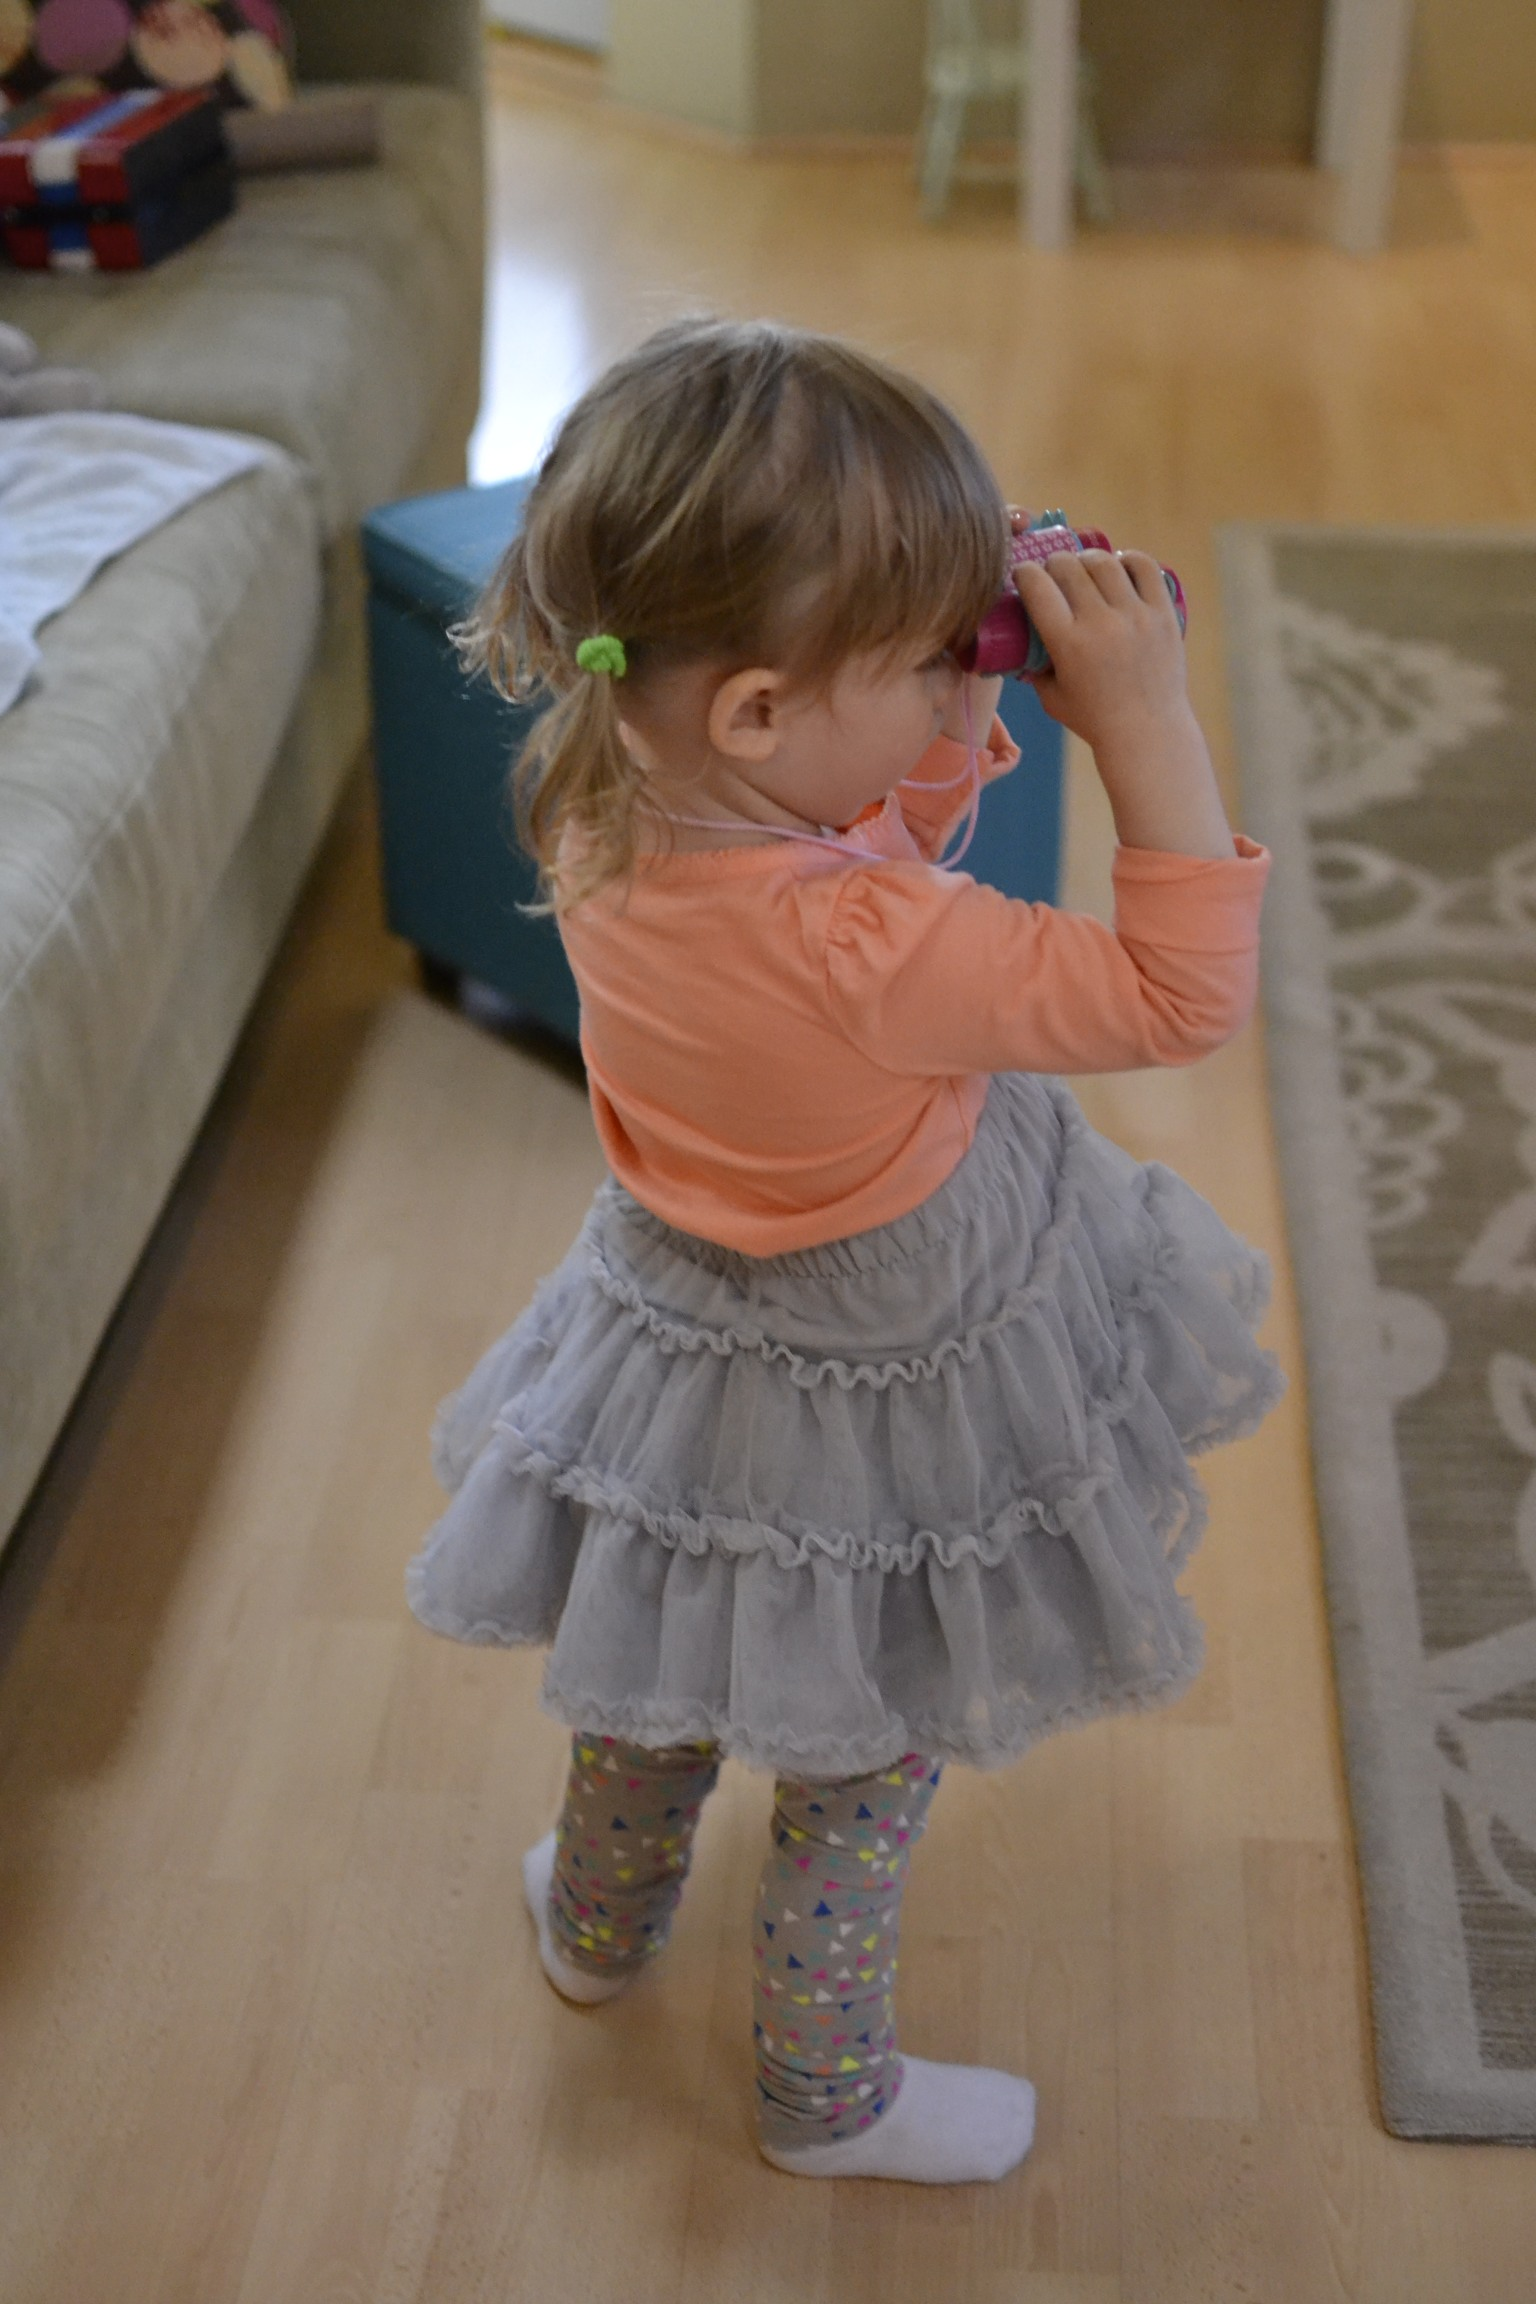 and then, 2 minutes later....deciding the grey tutu was much better.